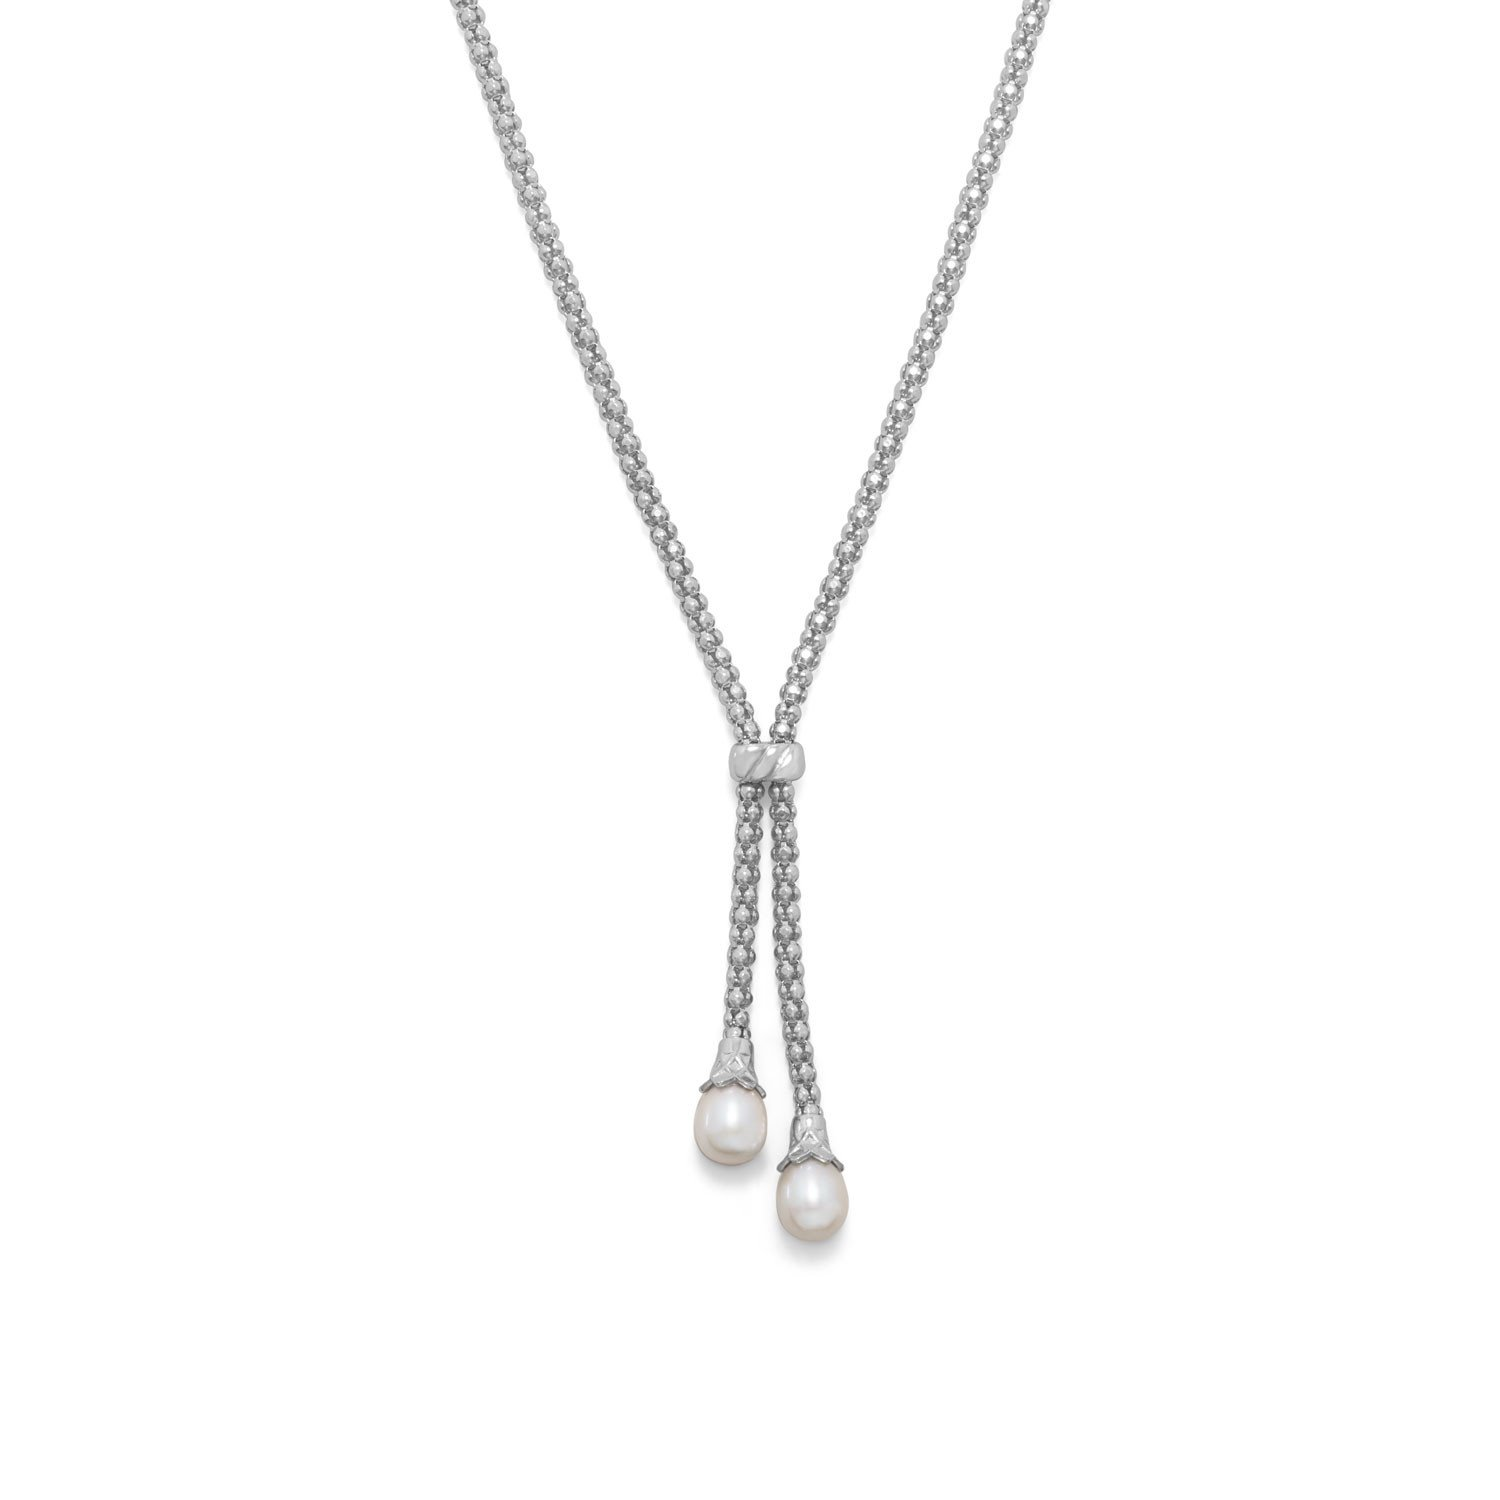 Rhodium Plated Coreana and Cultured Freshwater Pearl End Bolo Necklace